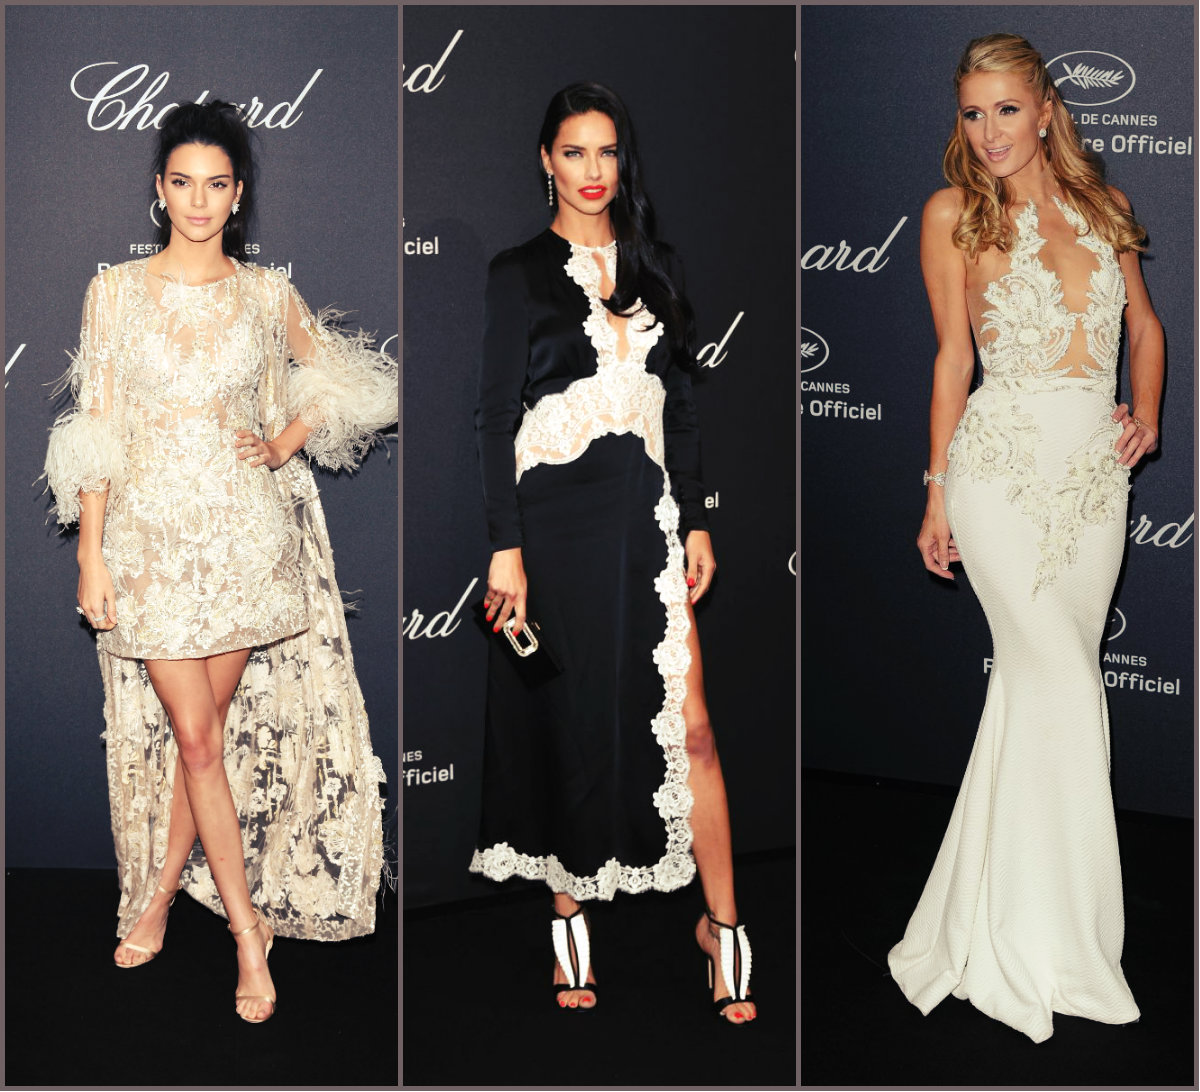 Chopard Wild Party 2016 Hairstyles & Looks